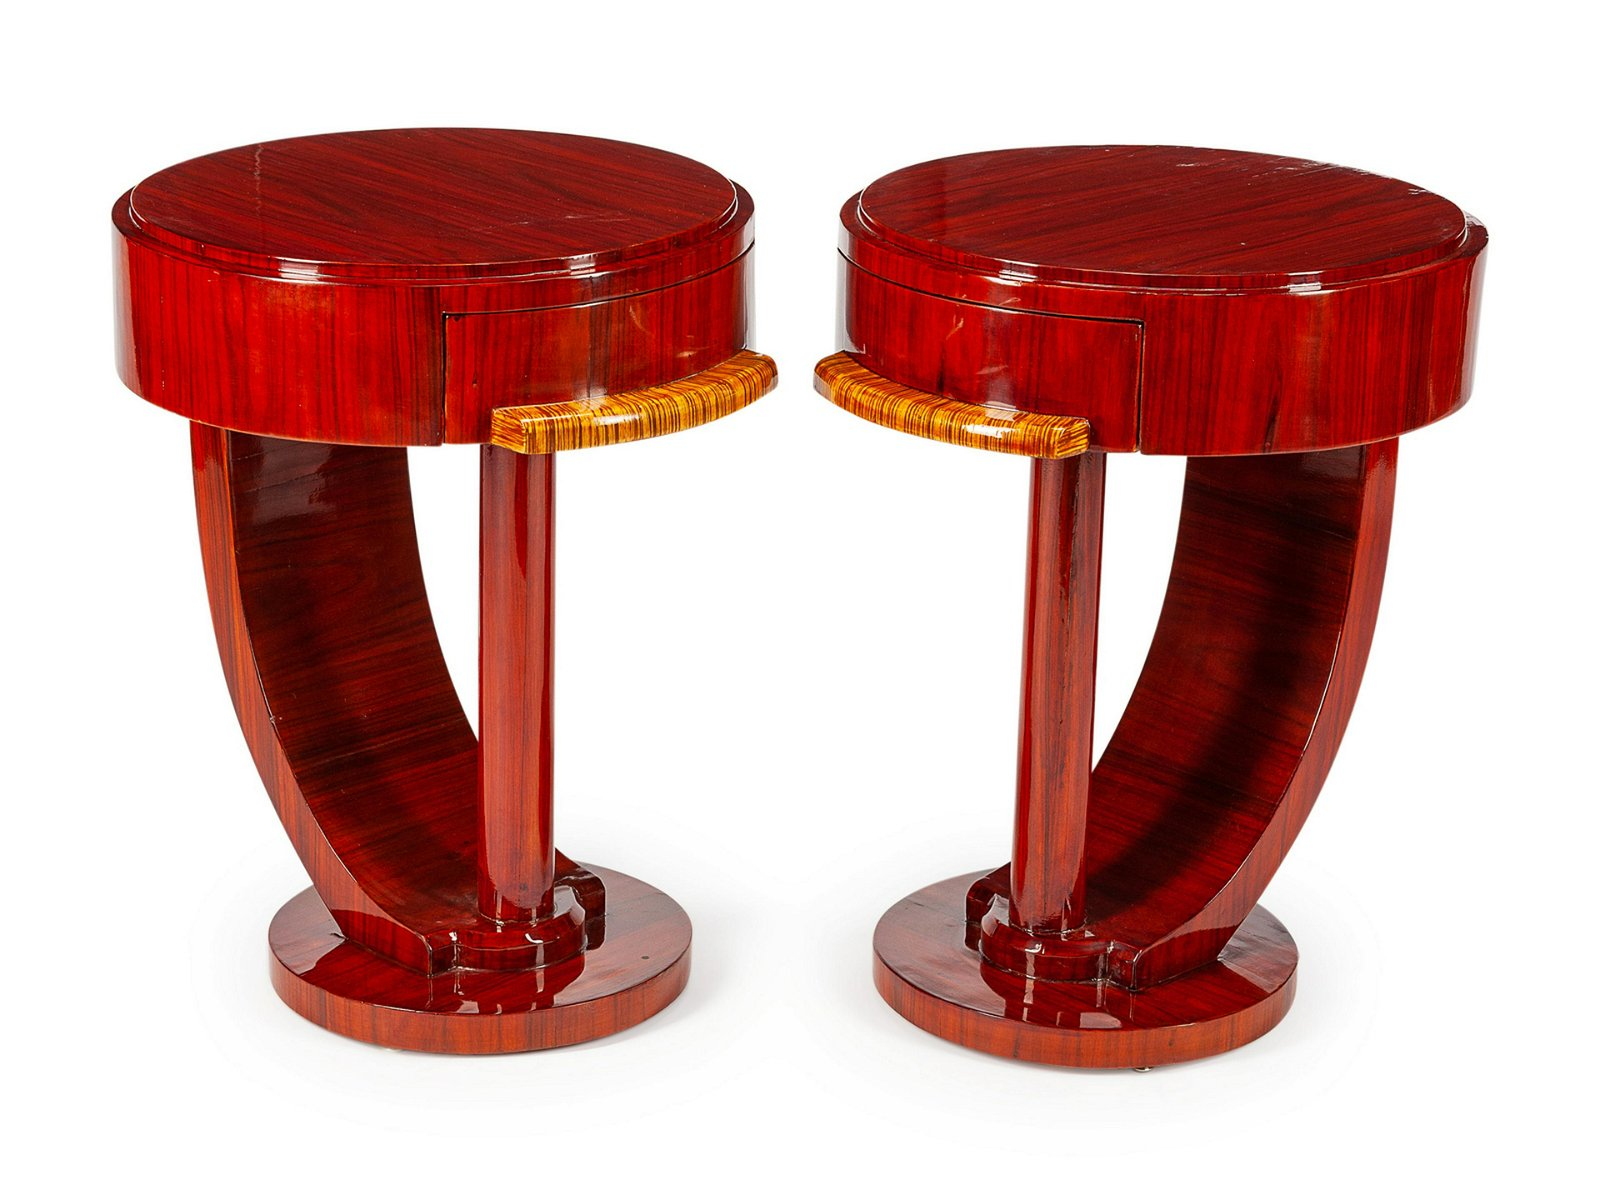 A Pair of Art Deco Style Nightstands